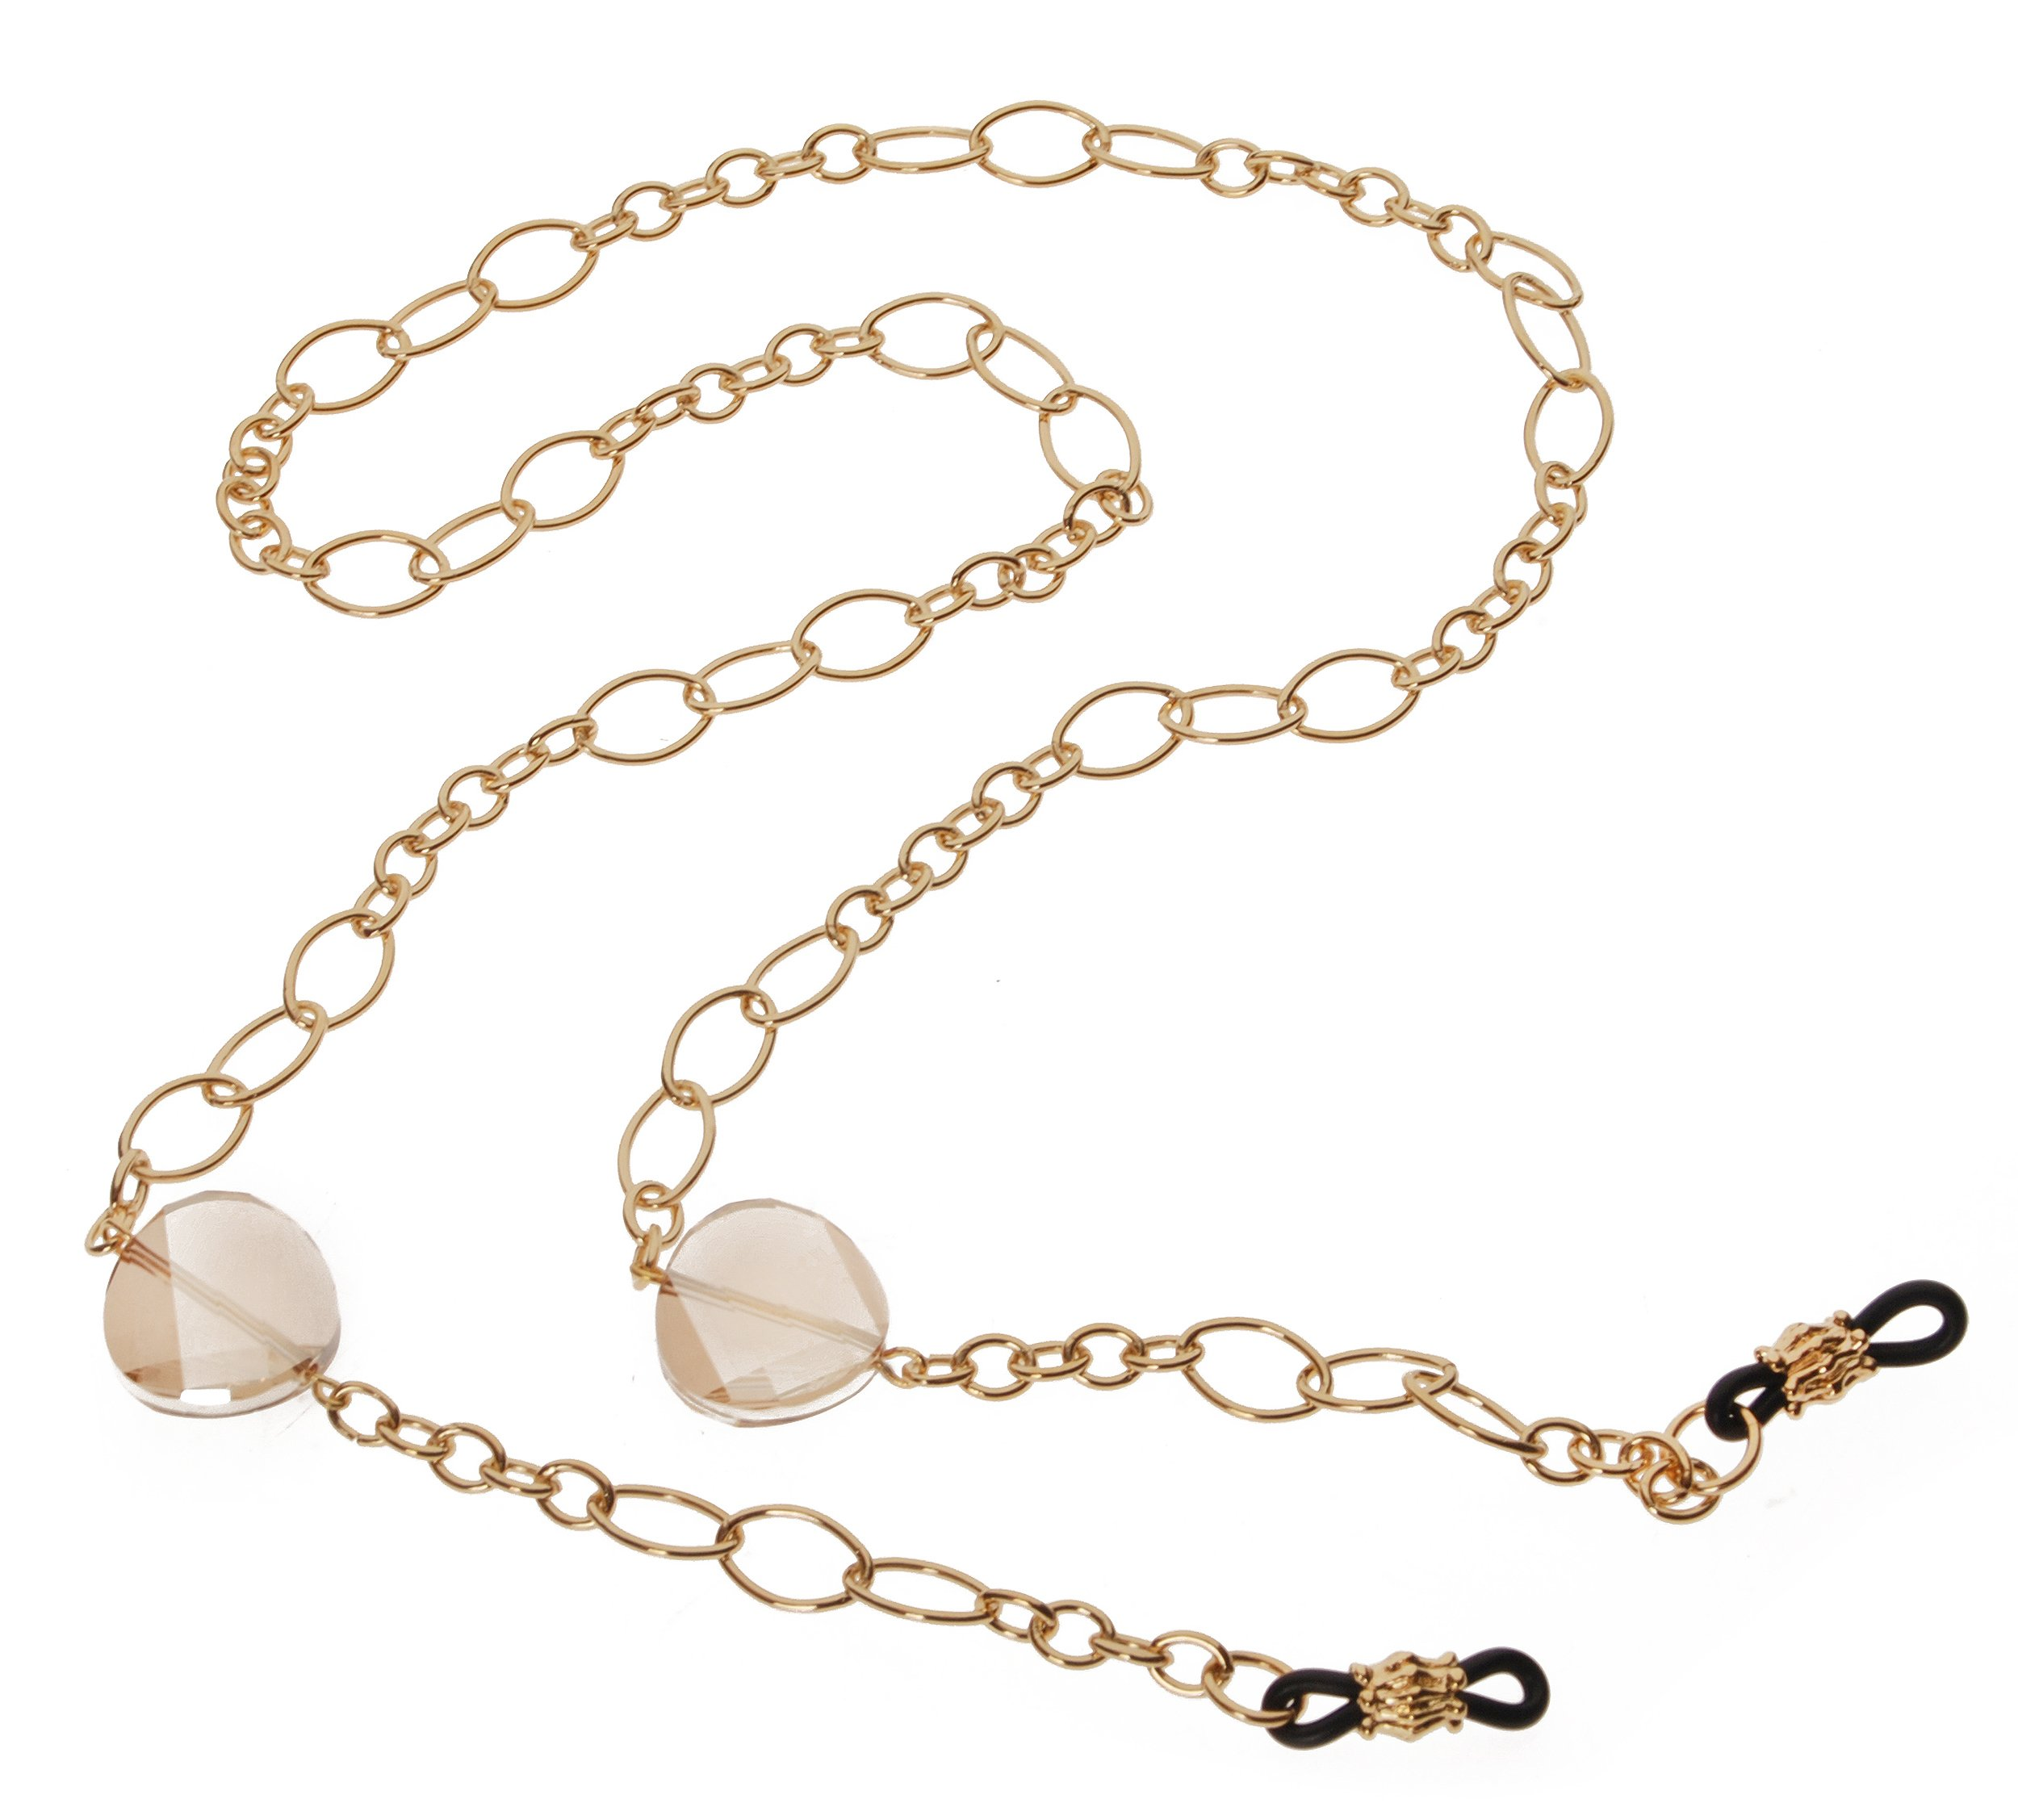 L. Erickson Spellbound Eyeglass Chain - Golden Shadow/Gold by L. Erickson